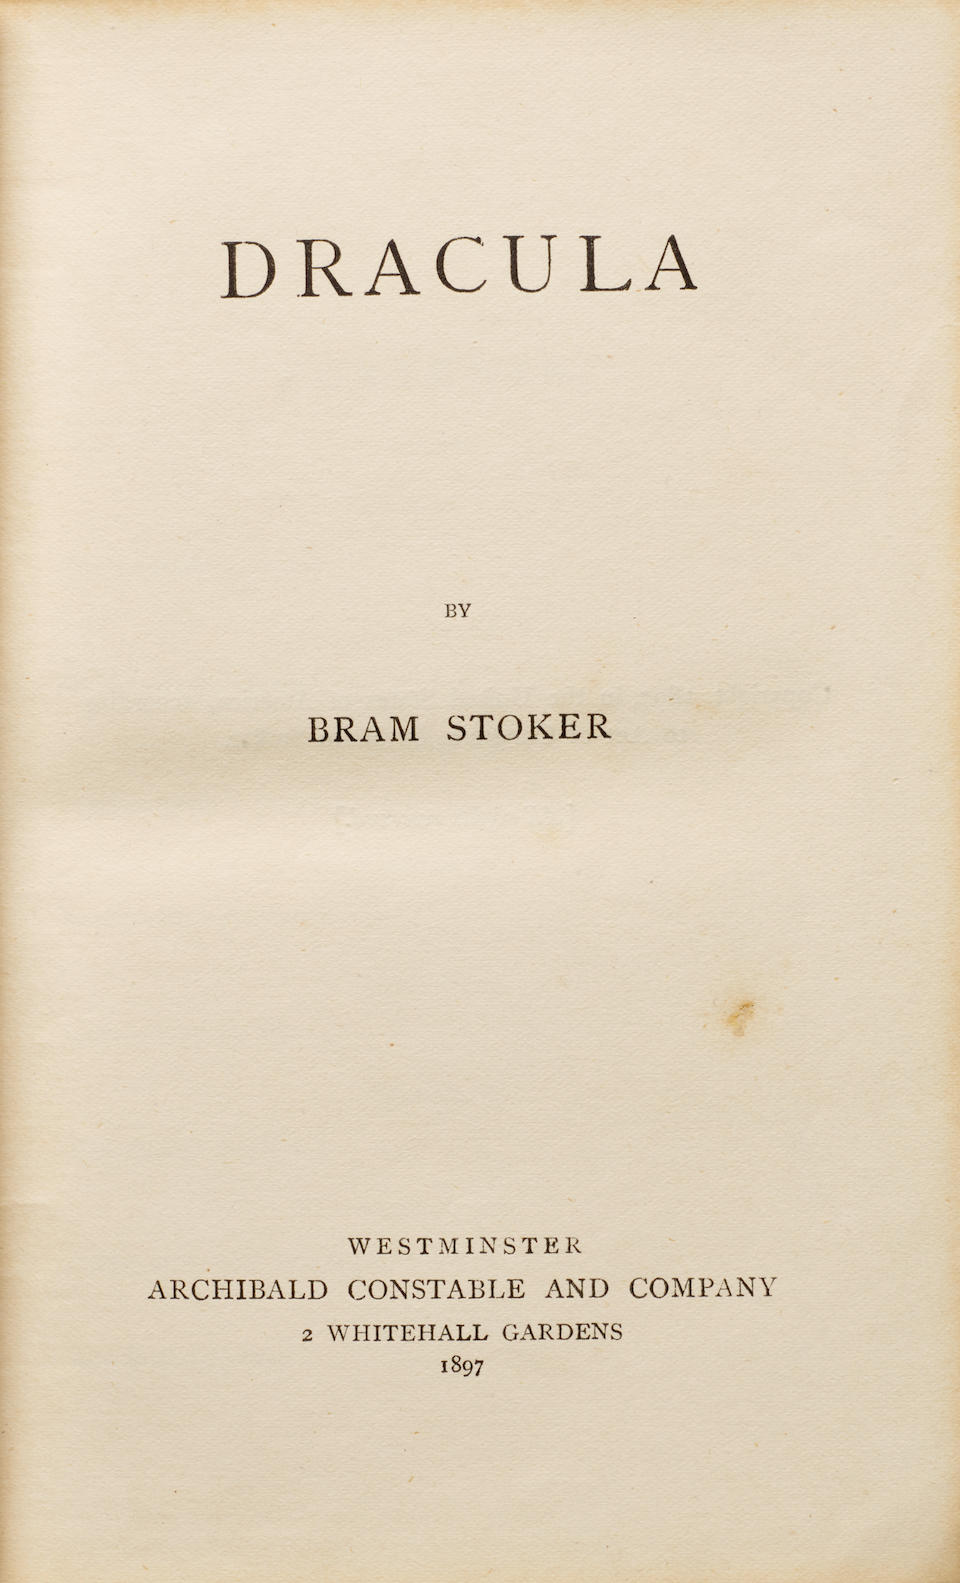 STOKER, BRAM. 1847-1912. Dracula. London: Westminster: Archibald Constable and Company, 1897.